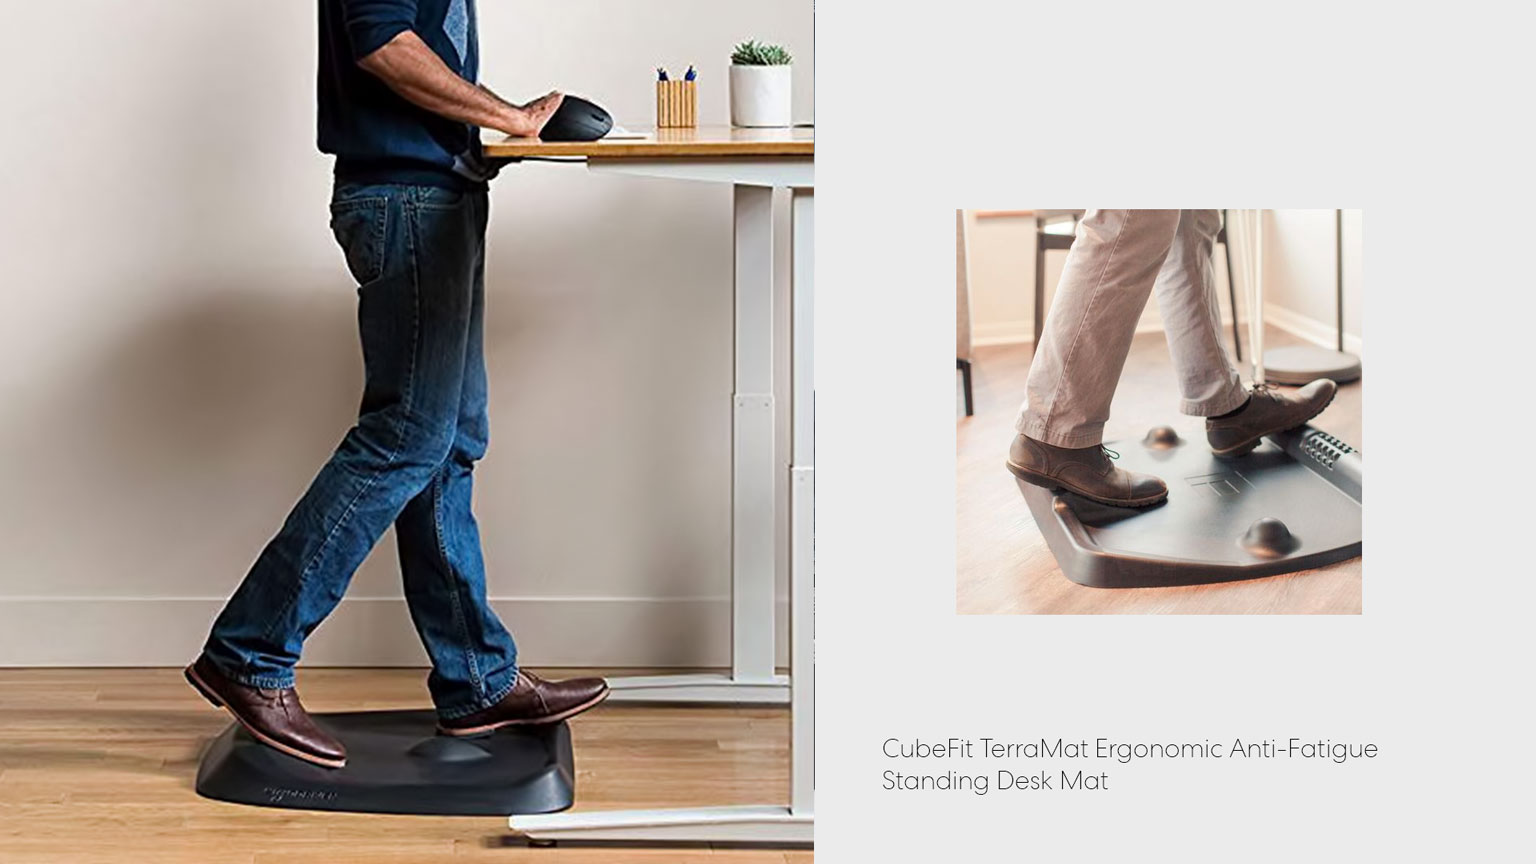 image relates to Anti-Fatigue Standing Desk Mat